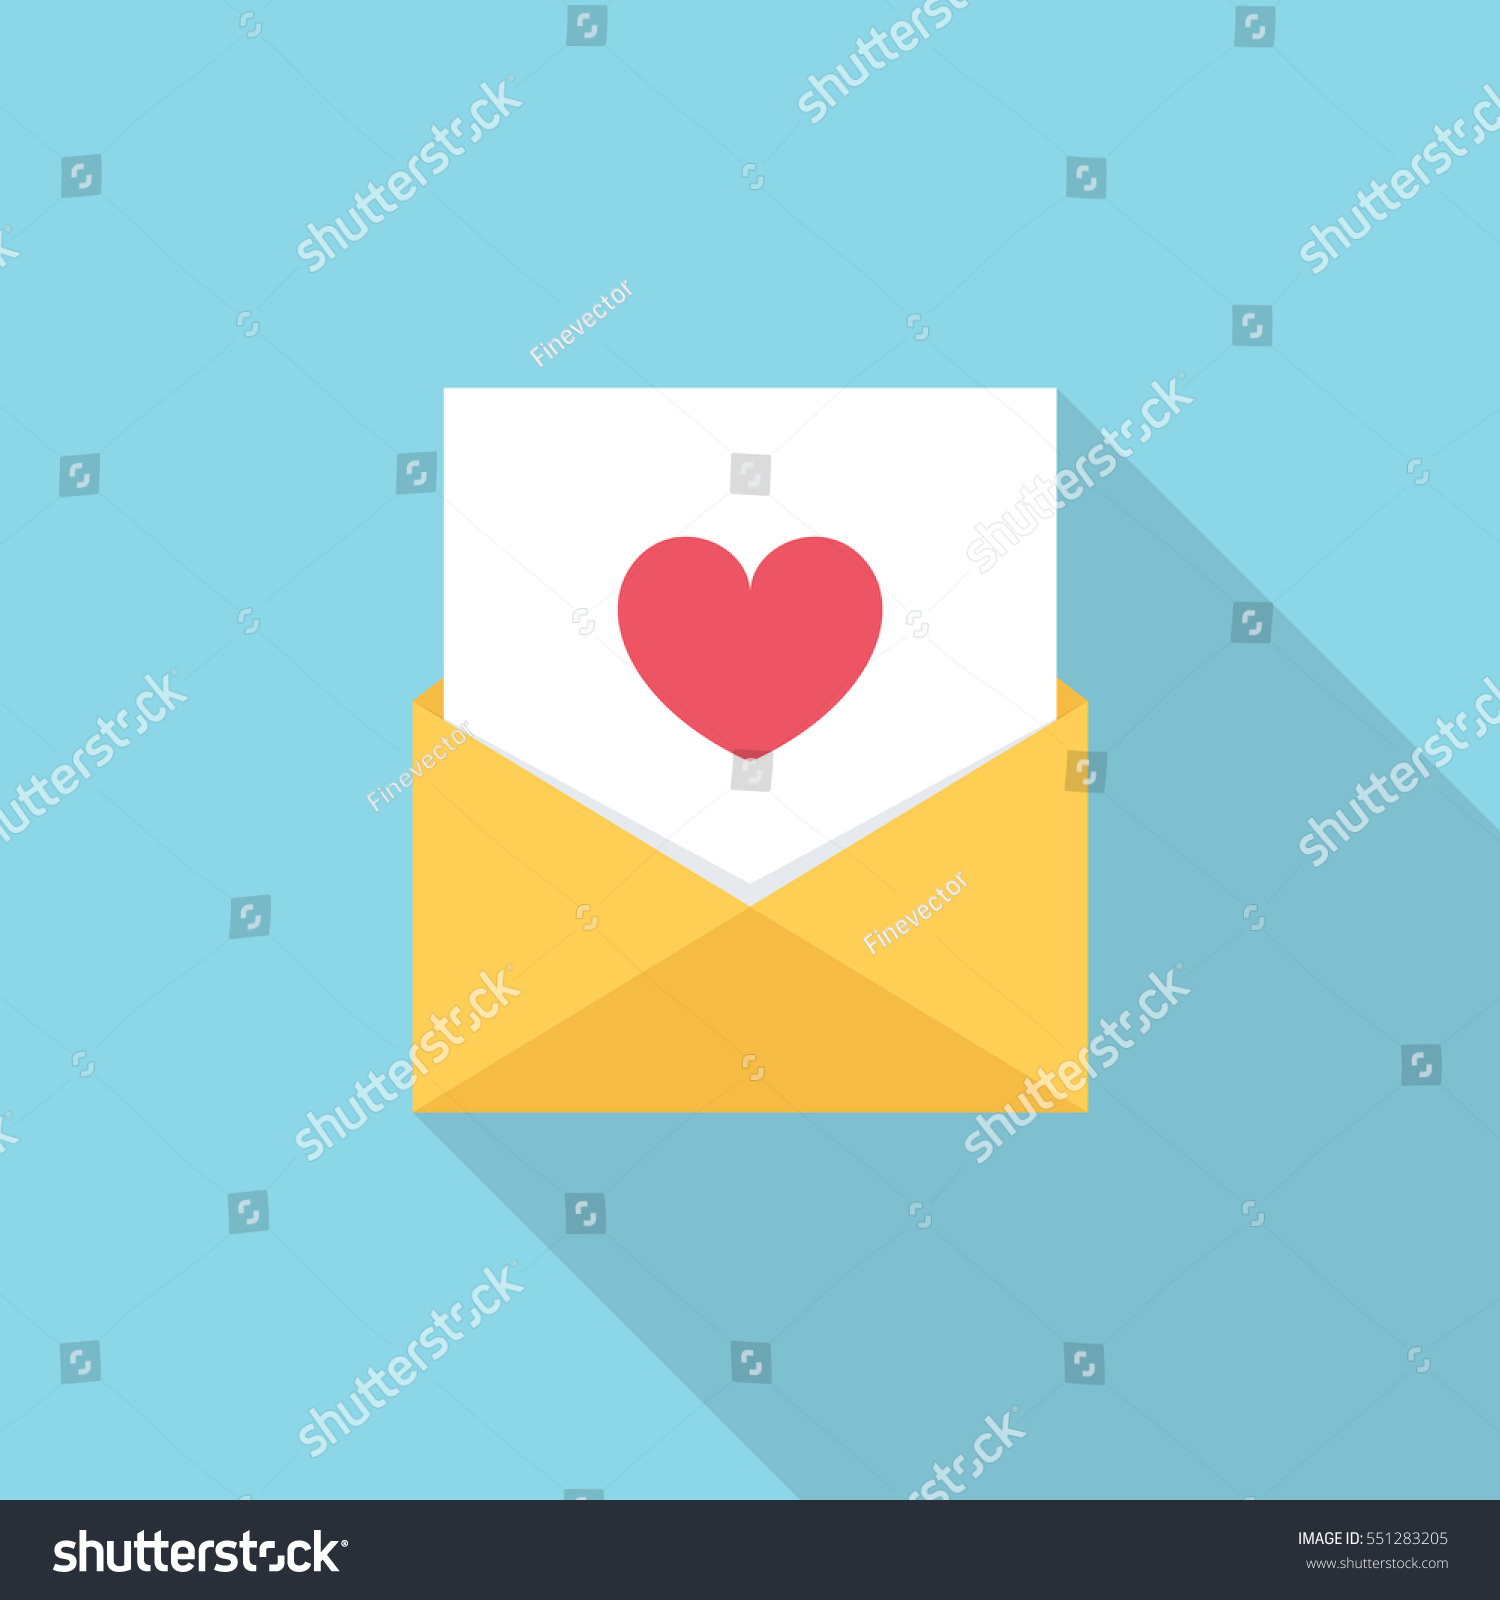 Heart symbol in text message images symbol and sign ideas letter email message heart symbol flat stock vector 551283205 letter email or message with heart symbol biocorpaavc